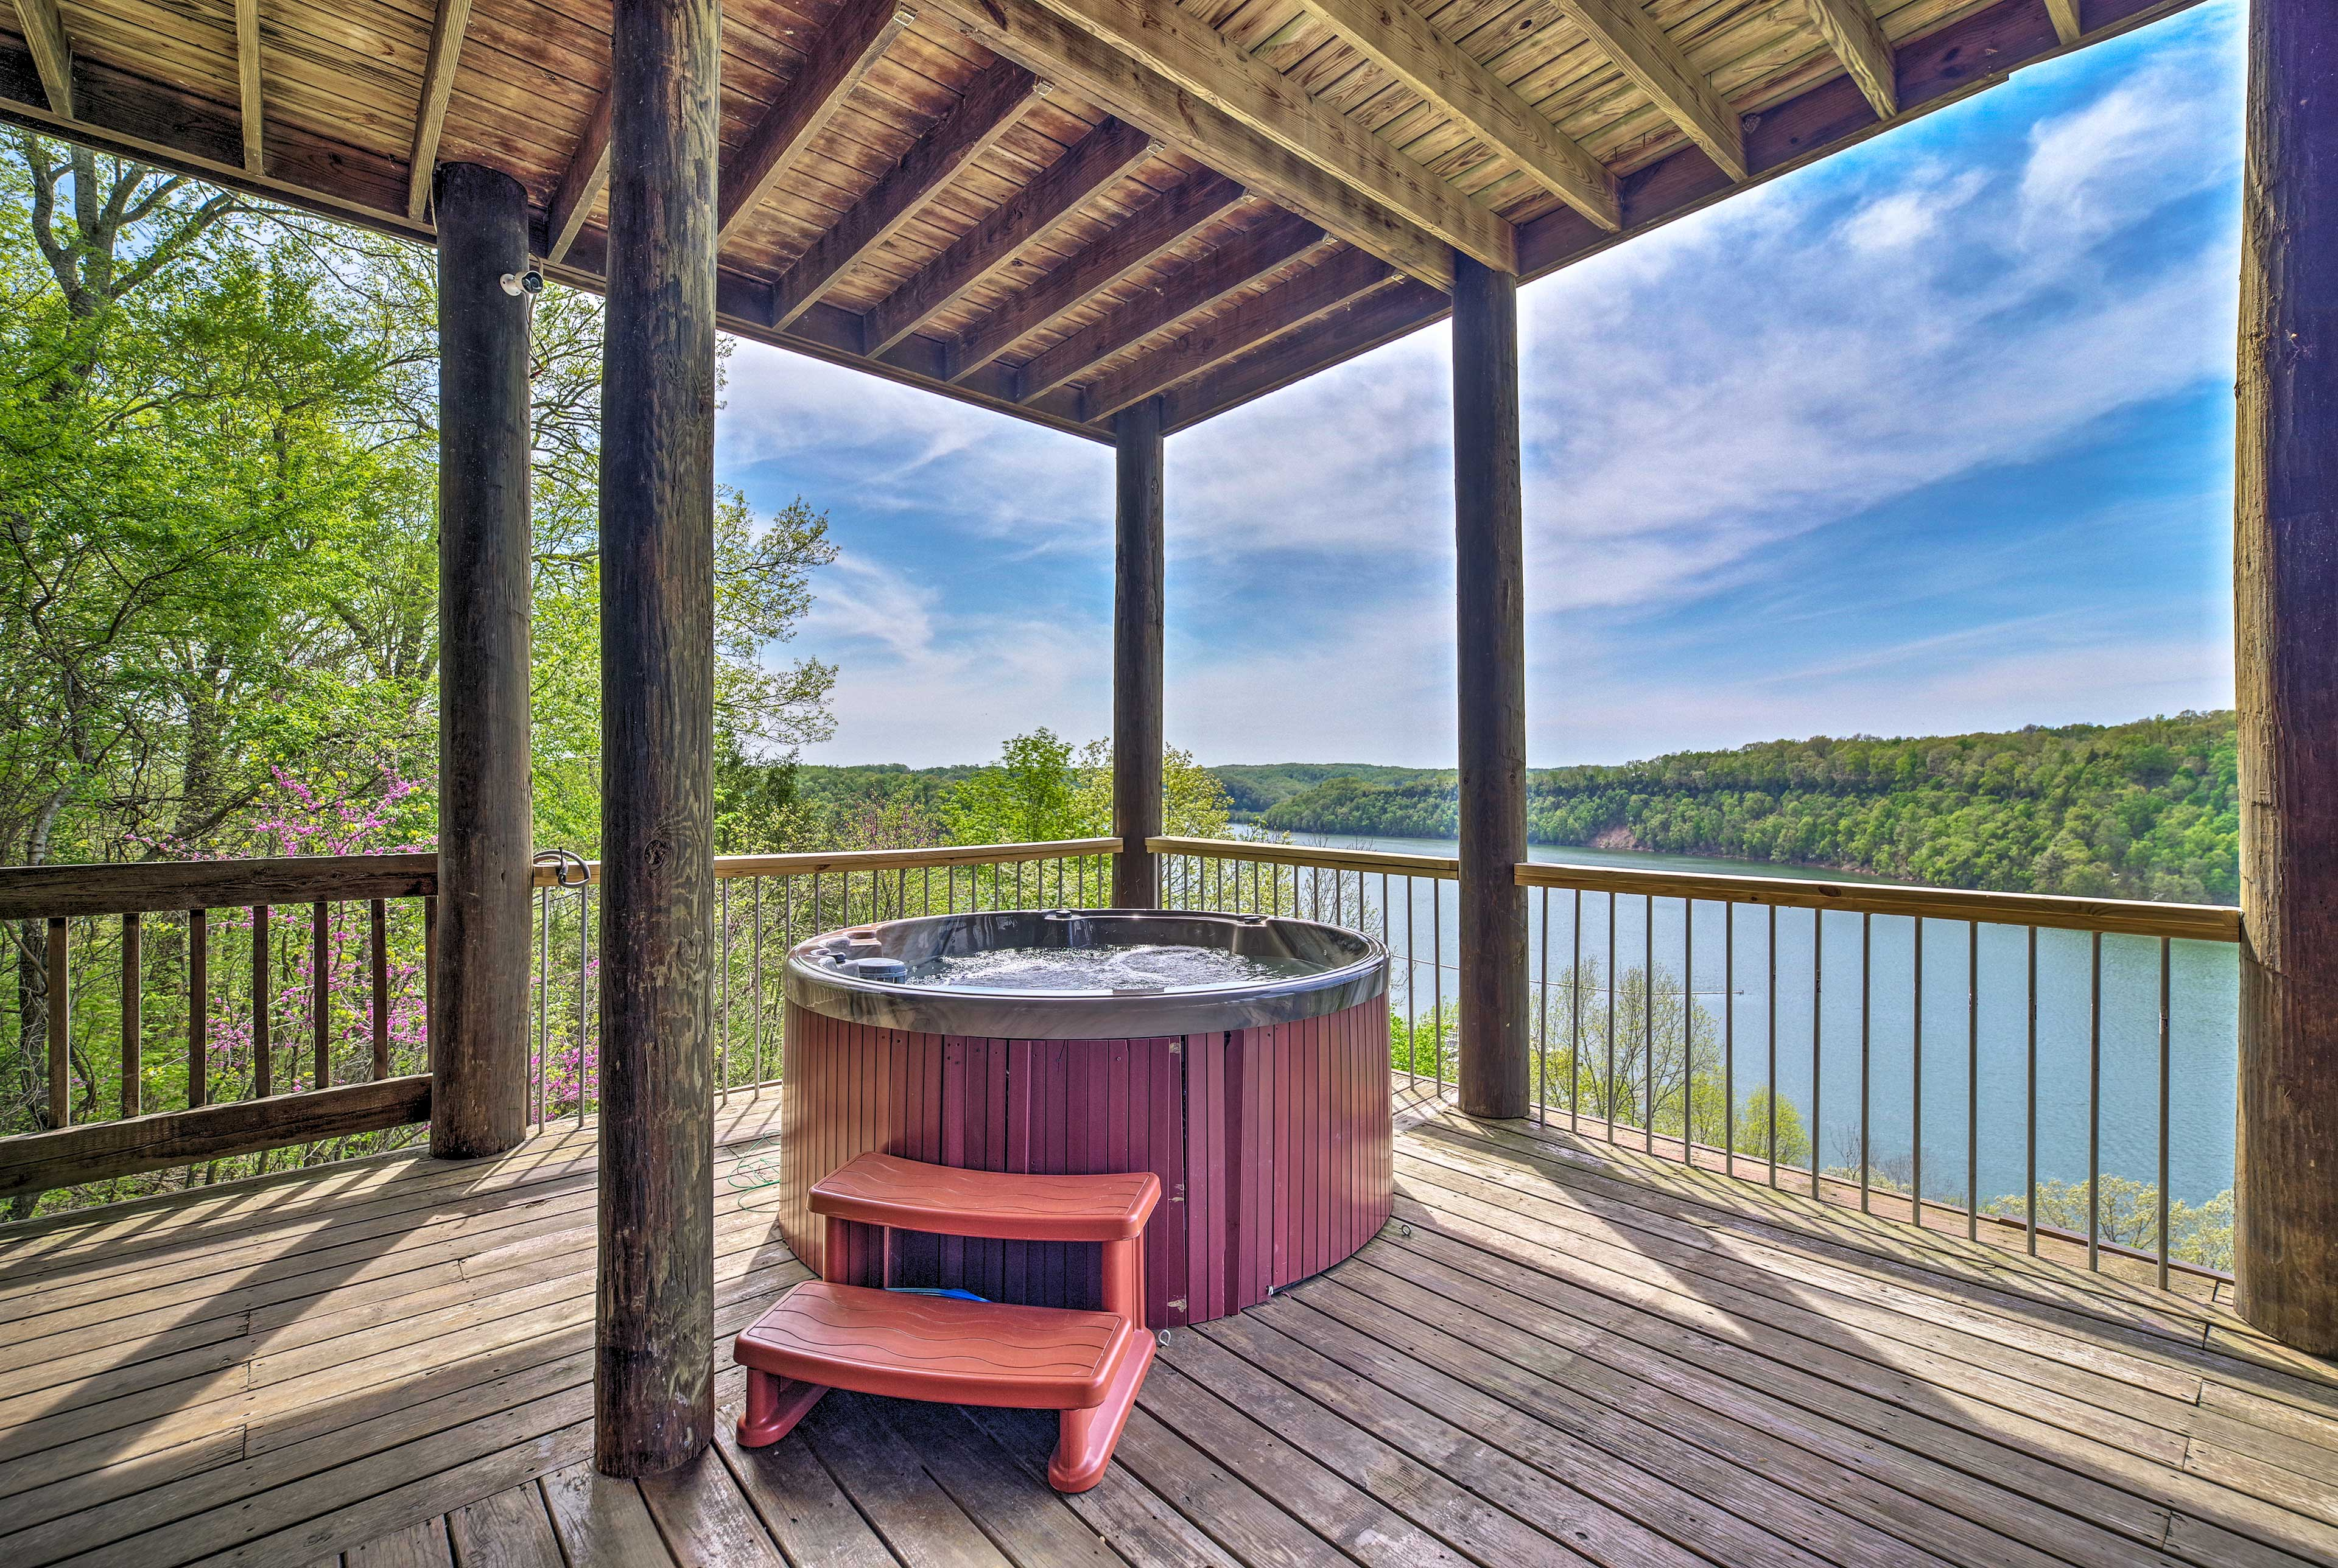 Soak your worries away in the private hot tub.